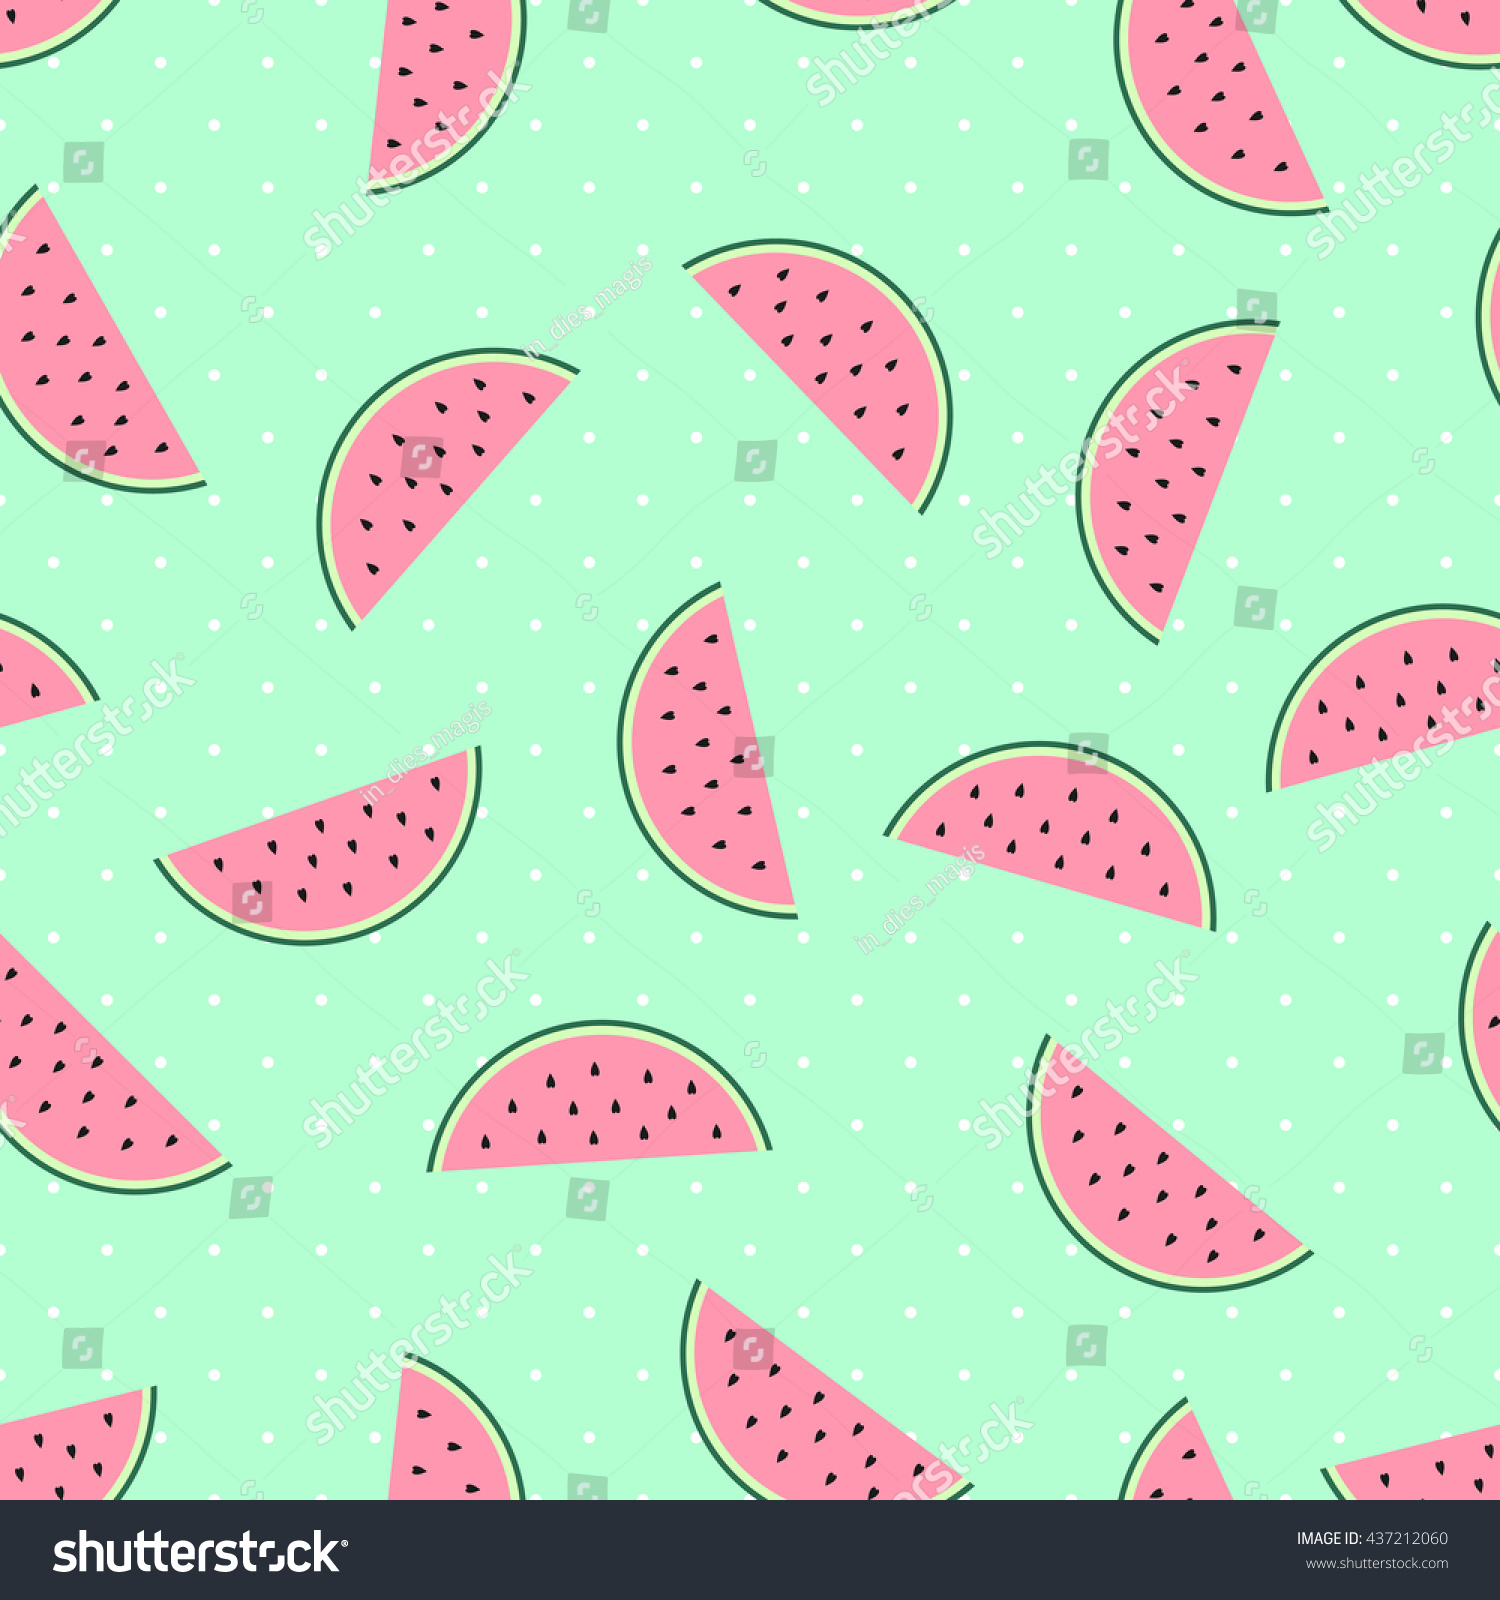 Pink Watermelon Slices Seamless Pattern On Mint Green Polka Dots Background Cute Fruit